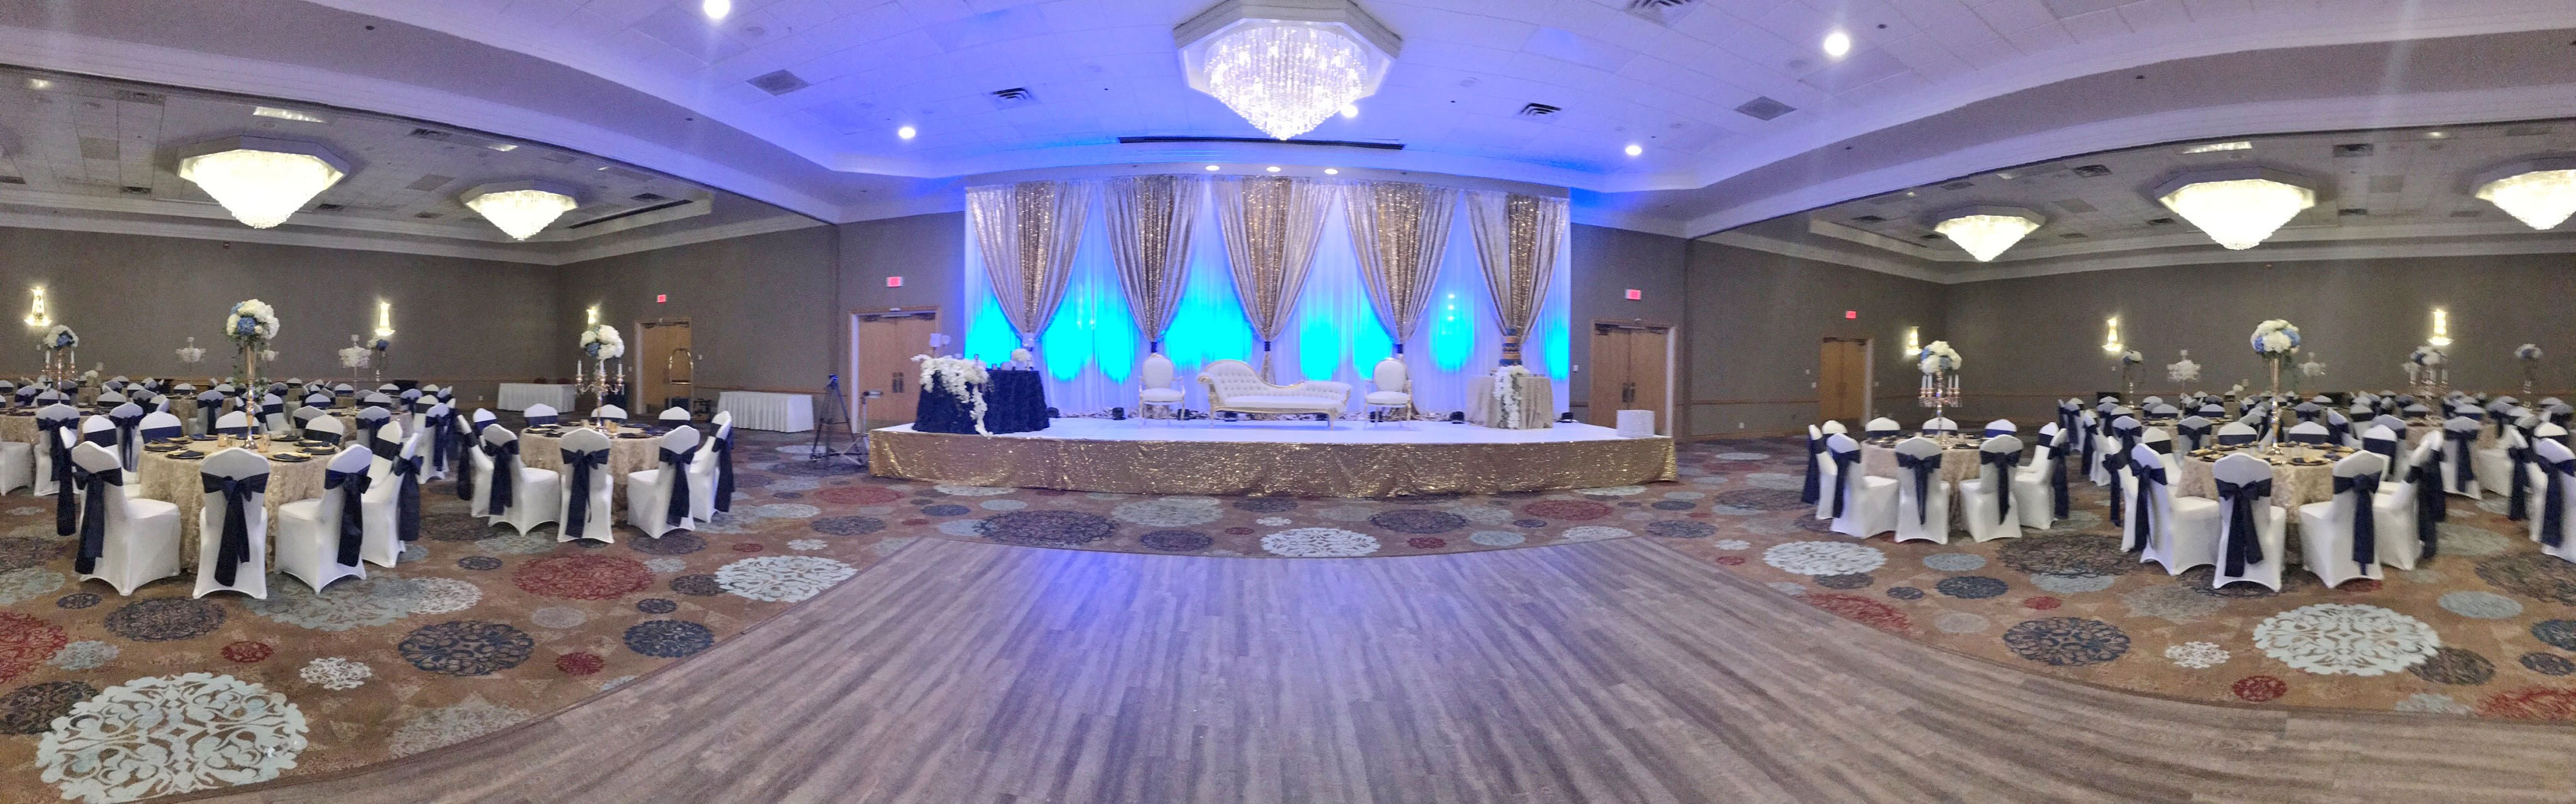 wedding reception set up with dance floor, lights, and flowers